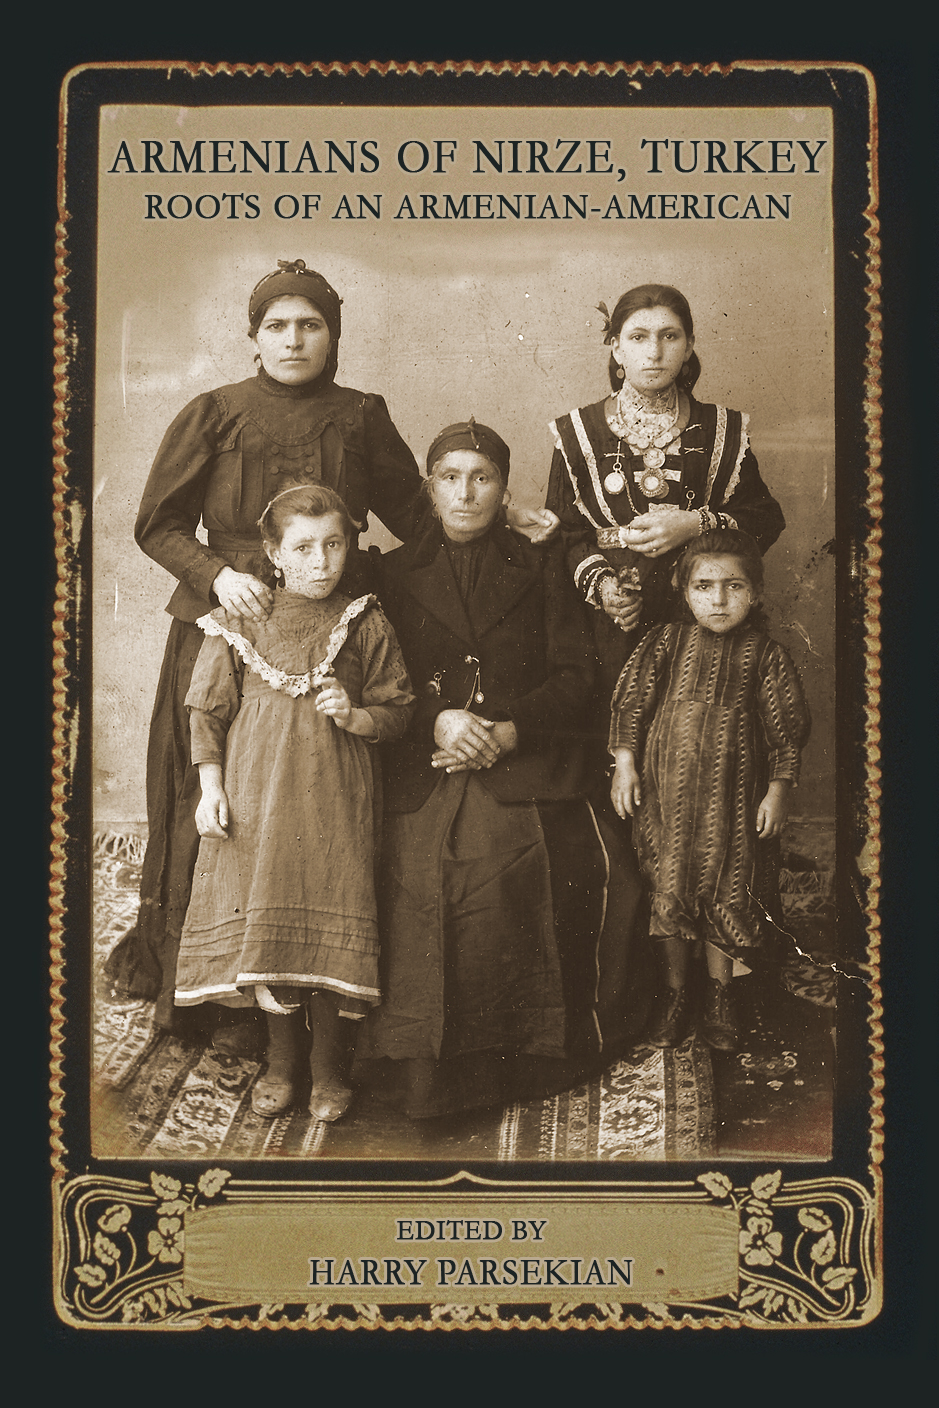 Armenians of Nirze, Turkey: Roots of an Armenian-American